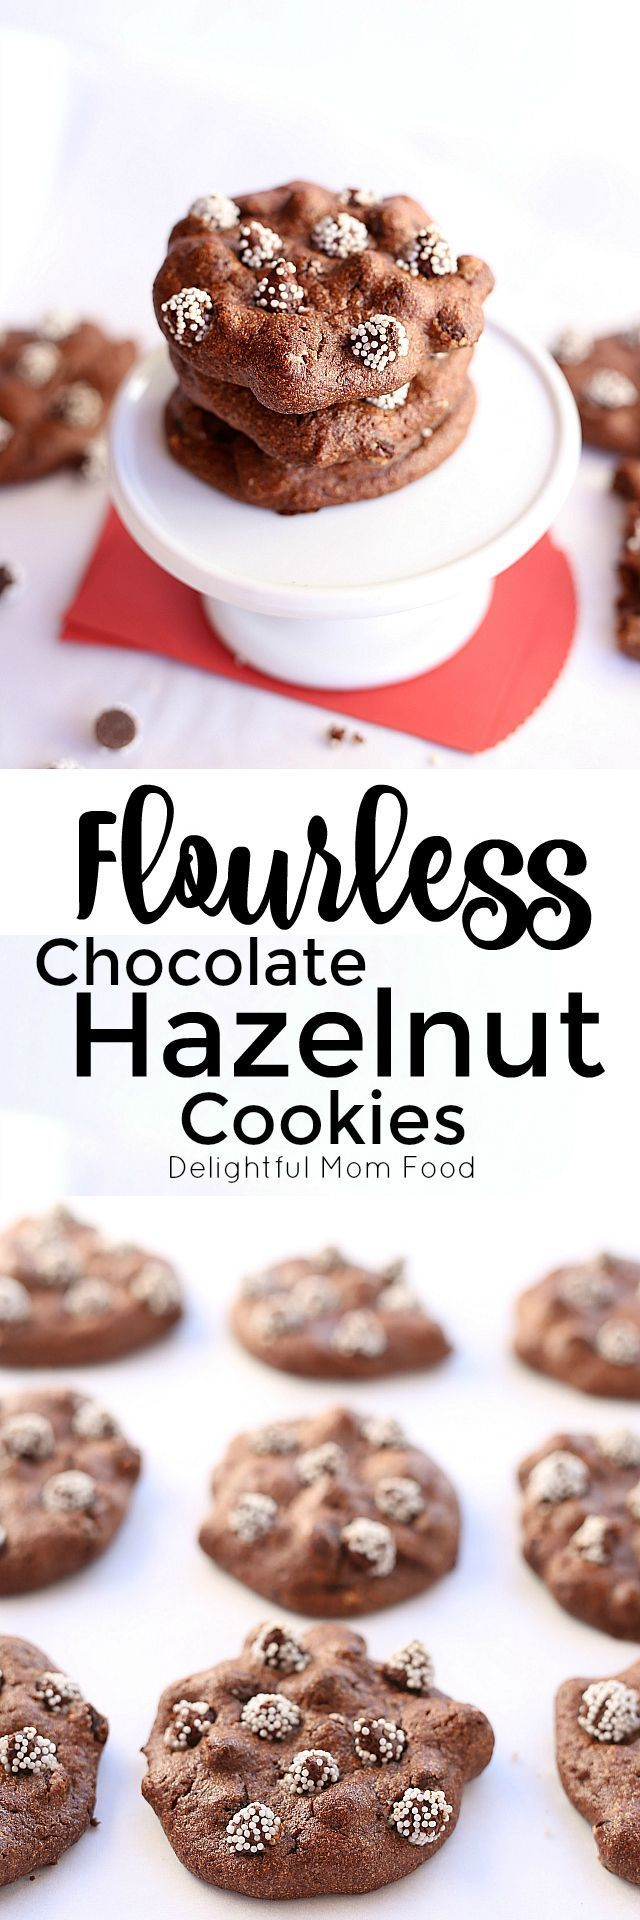 Flourless Cookies Recipe packed with protein from hazelnuts and egg whites! Sweetened with Maple Syrup and chocolate morsels.